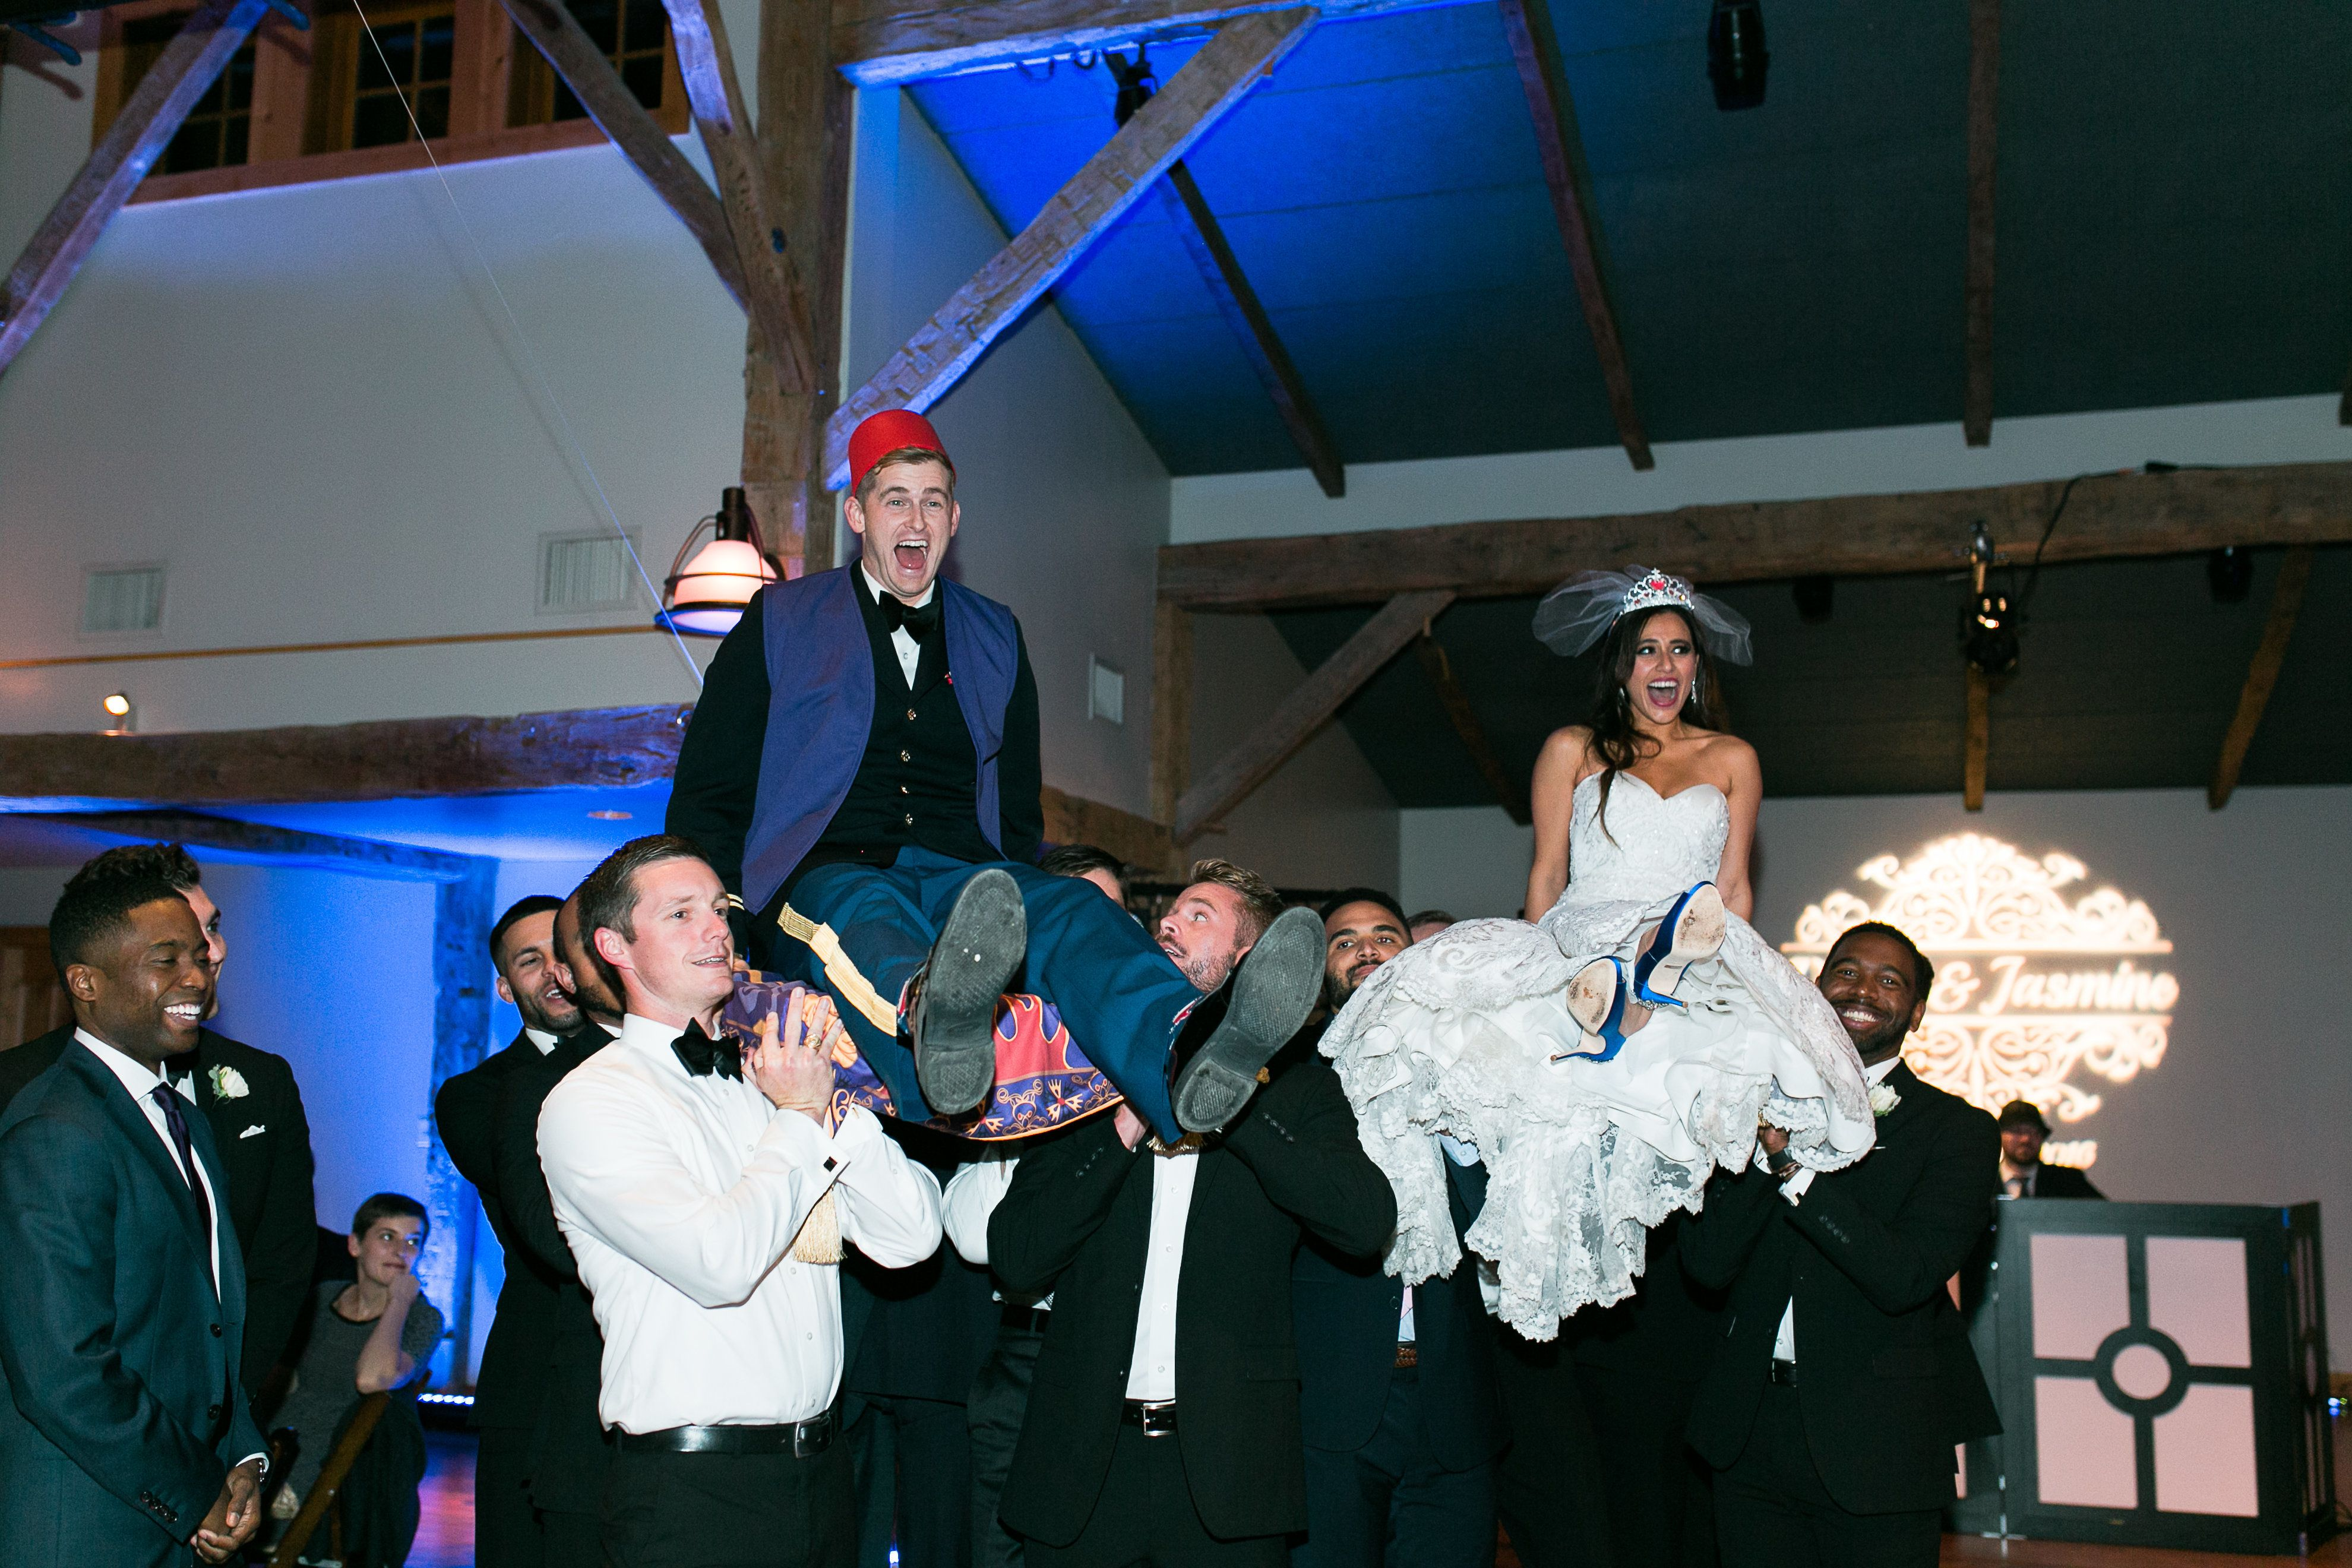 The bride and groom taking a magic carpet ride.